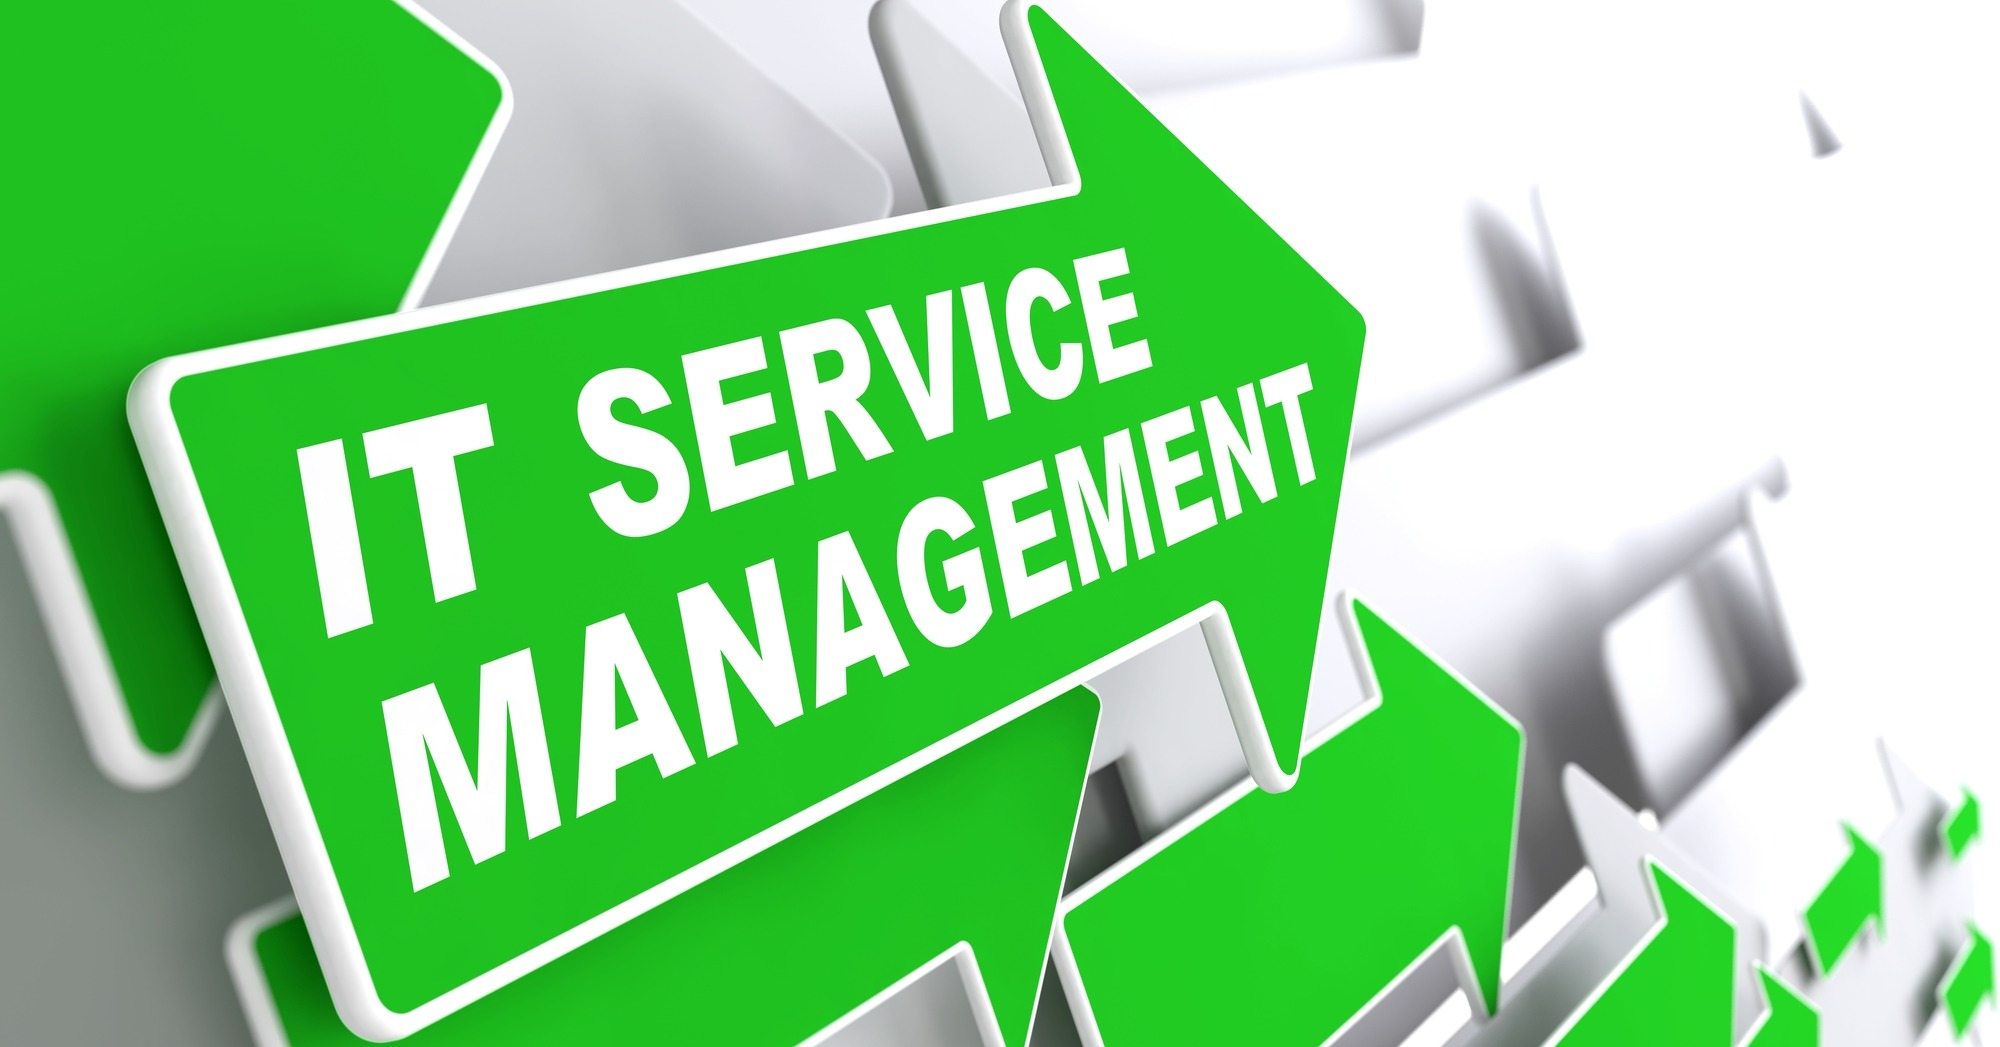 IT Service Management Concept